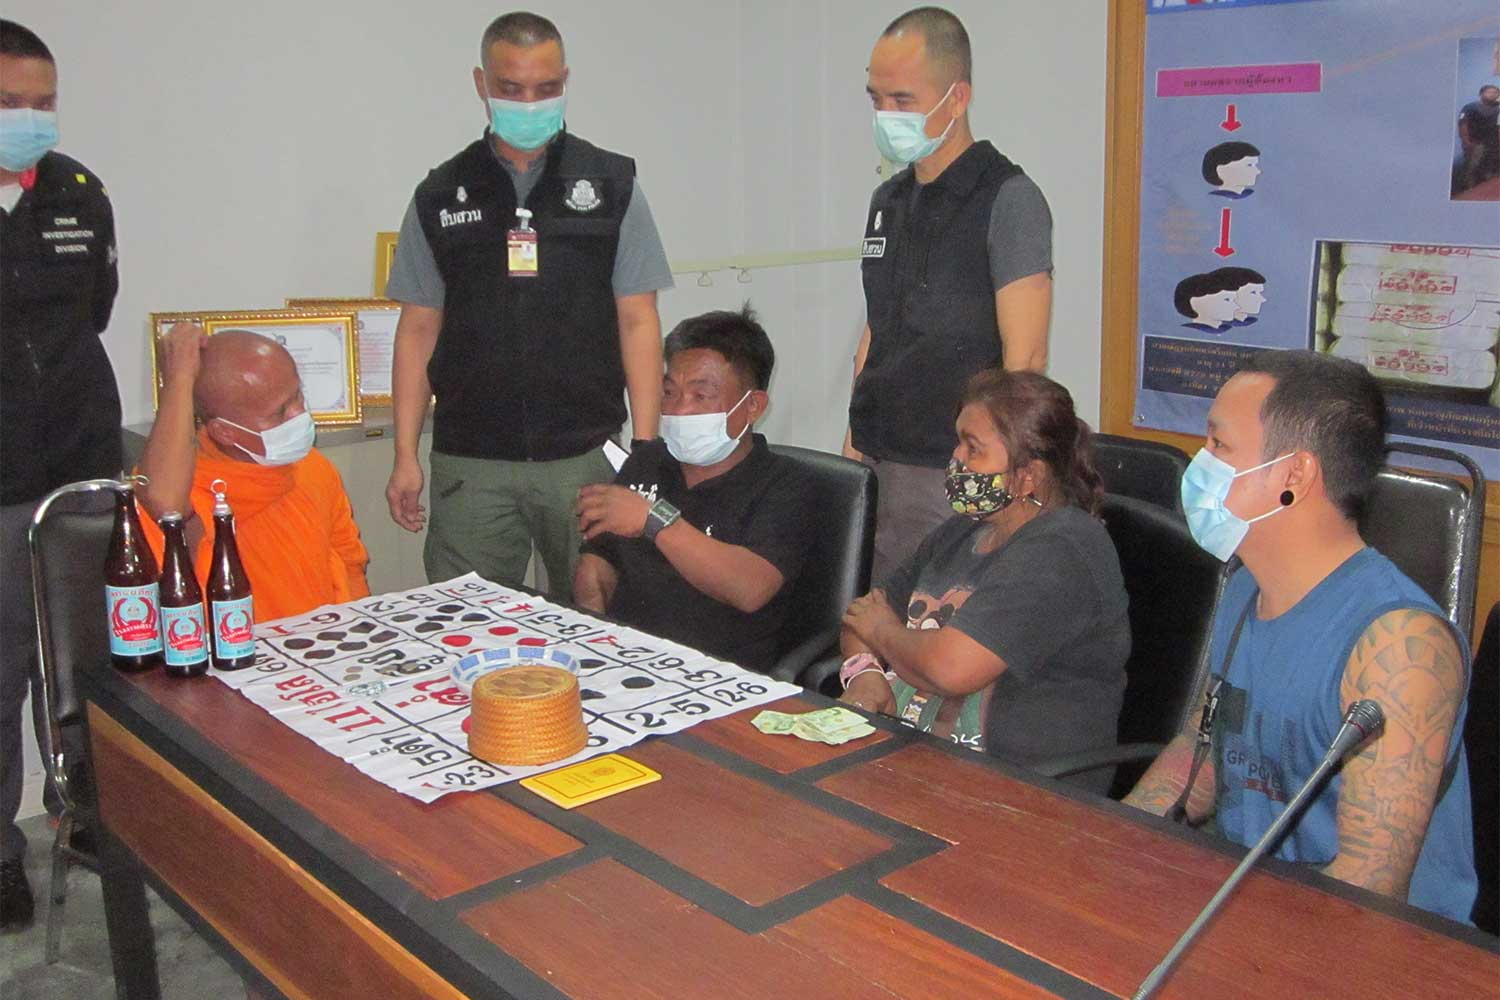 Phra Mao, 53, and three other gamblers, all seated, at Muang police station in Nakhon Sawan after the police raid  on Monday night, along with the three seized bottles of alcohol and a high-low dice game. (Photo: Chalit Pumruang)